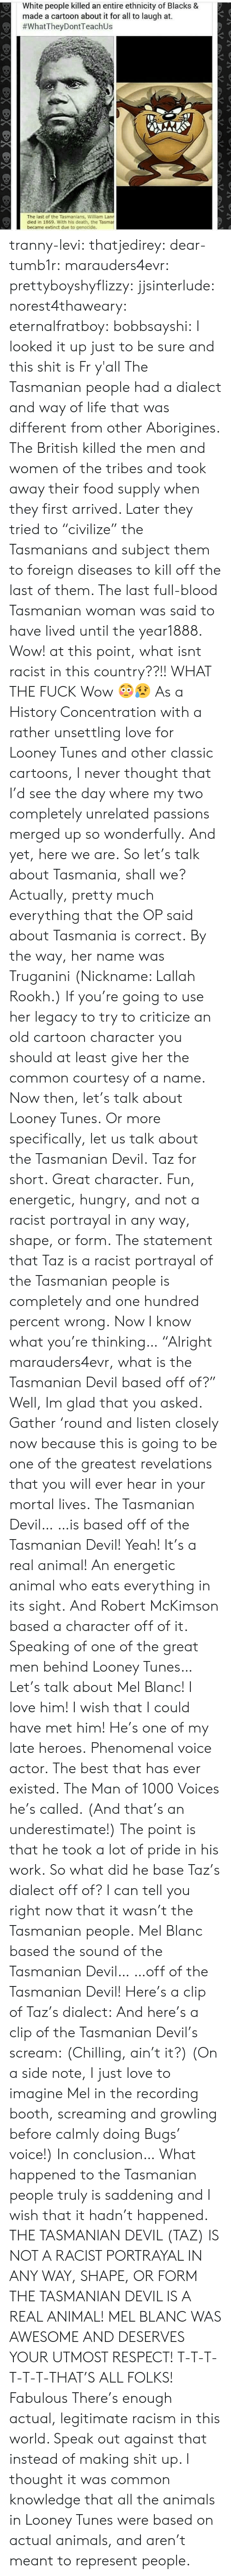 "tranny: White people killed an entire ethnicity of Blacks &  made a cartoon about it for all to laugh at.  #whatTheyDontTeach Us  The last of the Tasmanians, William Lanr  died in 1869. With his death, the Tasma  became extinct due to genocide. tranny-levi:  thatjedirey:   dear-tumb1r:  marauders4evr:  prettyboyshyflizzy:  jjsinterlude:  norest4thaweary:  eternalfratboy:  bobbsayshi:  I looked it up just to be sure and this shit is Fr y'all The Tasmanian people had a dialect and way of life that was different from other Aborigines. The British killed the men and women of the tribes and took away their food supply when they first arrived. Later they tried to ""civilize"" the Tasmanians and subject them to foreign diseases to kill off the last of them. The last full-blood Tasmanian woman was said to have lived until the year1888.  Wow!  at this point, what isnt racist in this country??!!  WHAT THE FUCK  Wow 😳😥   As a History Concentration with a rather unsettling love for Looney Tunes and other classic cartoons, I never thought that I'd see the day where my two completely unrelated passions merged up so wonderfully. And yet, here we are. So let's talk about Tasmania, shall we? Actually, pretty much everything that the OP said about Tasmania is correct. By the way, her name was Truganini (Nickname:   Lallah Rookh.) If you're going to use her legacy to try to criticize an old cartoon character you should at least give her the common courtesy of a name. Now then, let's talk about Looney Tunes. Or more specifically, let us talk about the Tasmanian Devil. Taz for short. Great character. Fun, energetic, hungry, and not a racist portrayal in any way, shape, or form. The statement that Taz is a racist portrayal of the Tasmanian people is completely and one hundred percent wrong. Now I know what you're thinking… ""Alright marauders4evr, what is the Tasmanian Devil based off of?"" Well, Im glad that you asked. Gather 'round and listen closely now because this is going to be one of the greatest revelations that you will ever hear in your mortal lives. The Tasmanian Devil… …is based off of the Tasmanian Devil! Yeah! It's a real animal! An energetic animal who eats everything in its sight. And Robert McKimson based a character off of it. Speaking of one of the great men behind Looney Tunes… Let's talk about Mel Blanc! I love him! I wish that I could have met him! He's one of my late heroes. Phenomenal voice actor. The best that has ever existed. The Man of 1000 Voices he's called. (And that's an underestimate!) The point is that he took a lot of pride in his work. So what did he base Taz's dialect off of? I can tell you right now that it wasn't the Tasmanian people. Mel Blanc based the sound of the Tasmanian Devil… …off of the Tasmanian Devil! Here's a clip of Taz's dialect: And here's a clip of the Tasmanian Devil's scream: (Chilling, ain't it?) (On a side note, I just love to imagine Mel in the recording booth, screaming and growling before calmly doing Bugs' voice!) In conclusion… What happened to the Tasmanian people truly is saddening and I wish that it hadn't happened. THE TASMANIAN DEVIL (TAZ) IS NOT A RACIST PORTRAYAL IN ANY WAY, SHAPE, OR FORM THE TASMANIAN DEVIL IS A REAL ANIMAL! MEL BLANC WAS AWESOME AND DESERVES YOUR UTMOST RESPECT! T-T-T-T-T-T-THAT'S ALL FOLKS!  Fabulous   There's enough actual, legitimate racism in this world. Speak out against that instead of making shit up.    I thought it was common knowledge that all the animals in Looney Tunes were based on actual animals, and aren't meant to represent people."